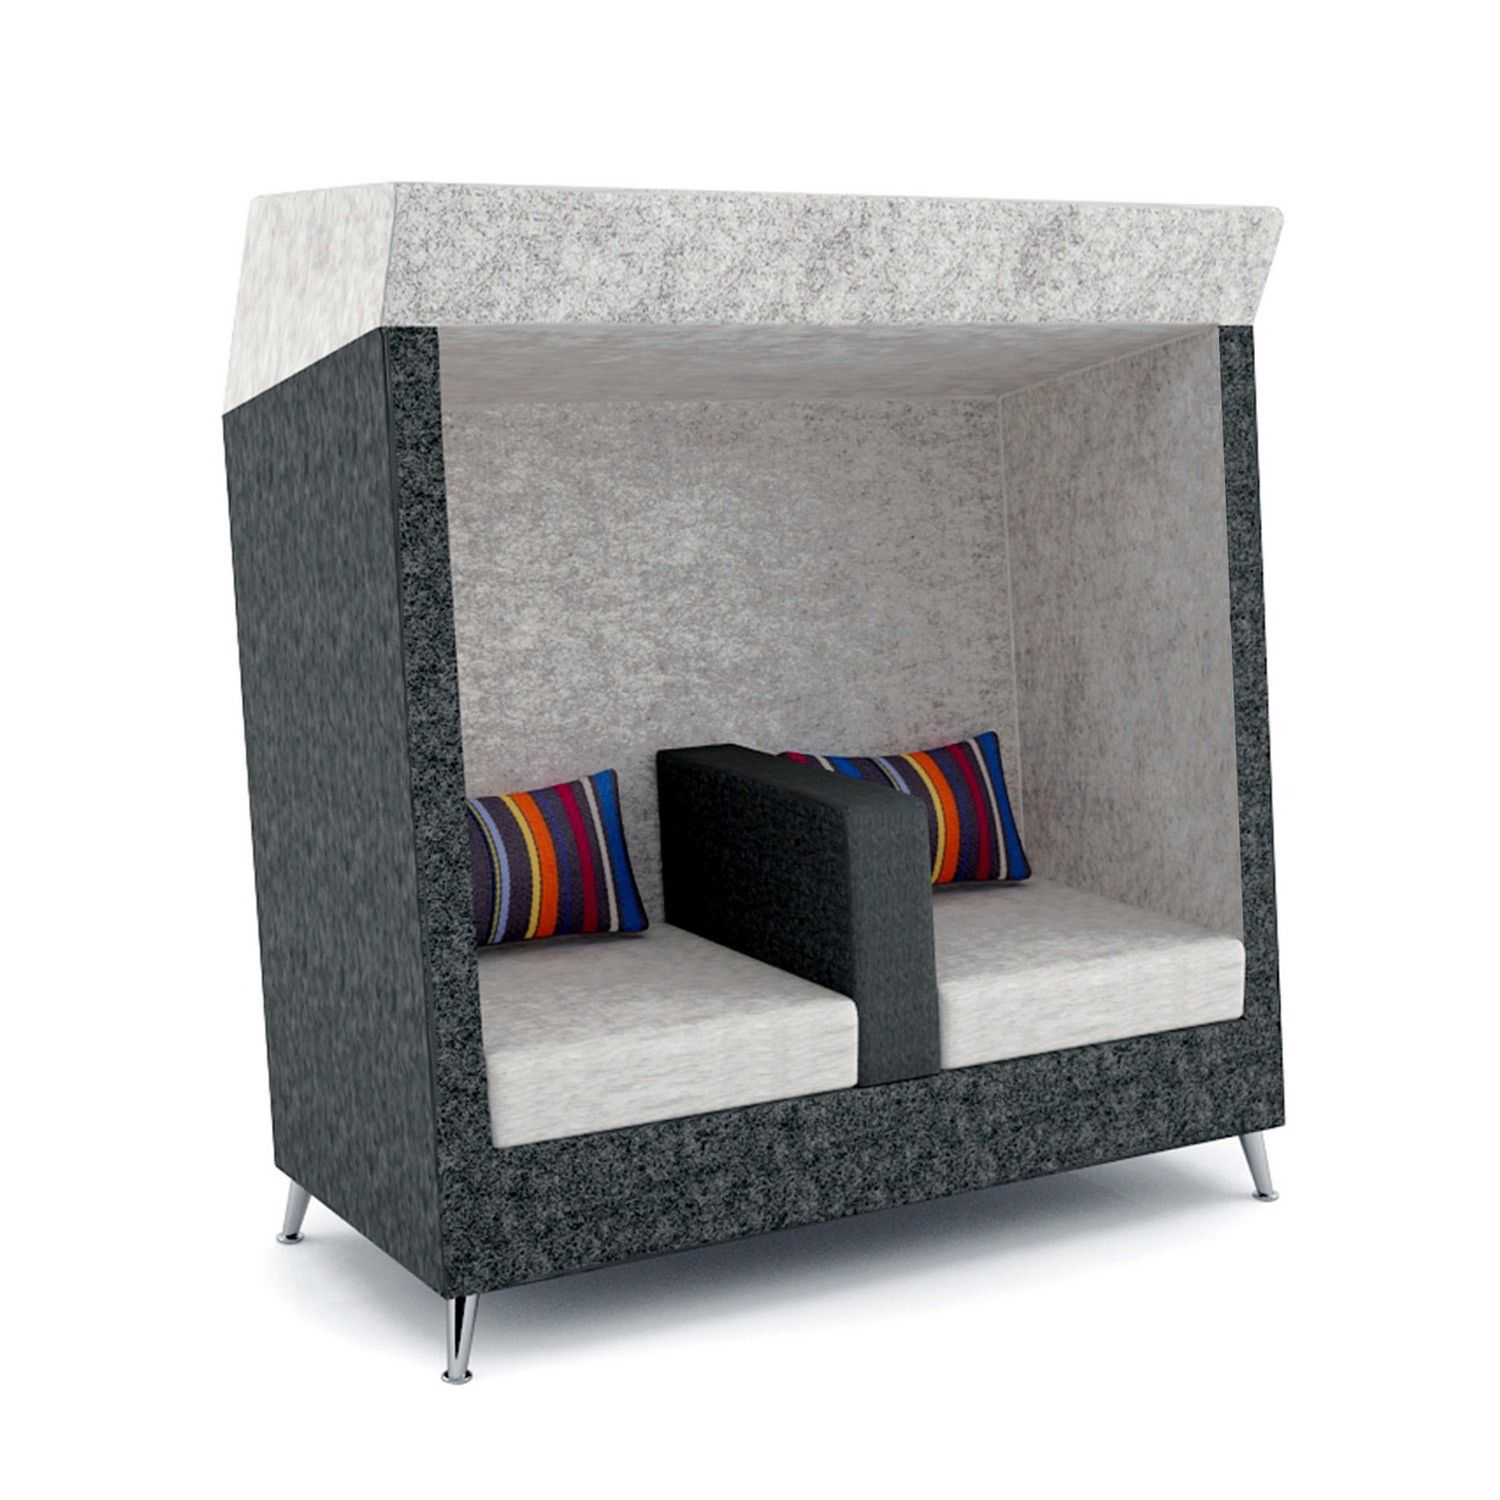 Nelson High Back Sofa is an acoustic seating range provides you